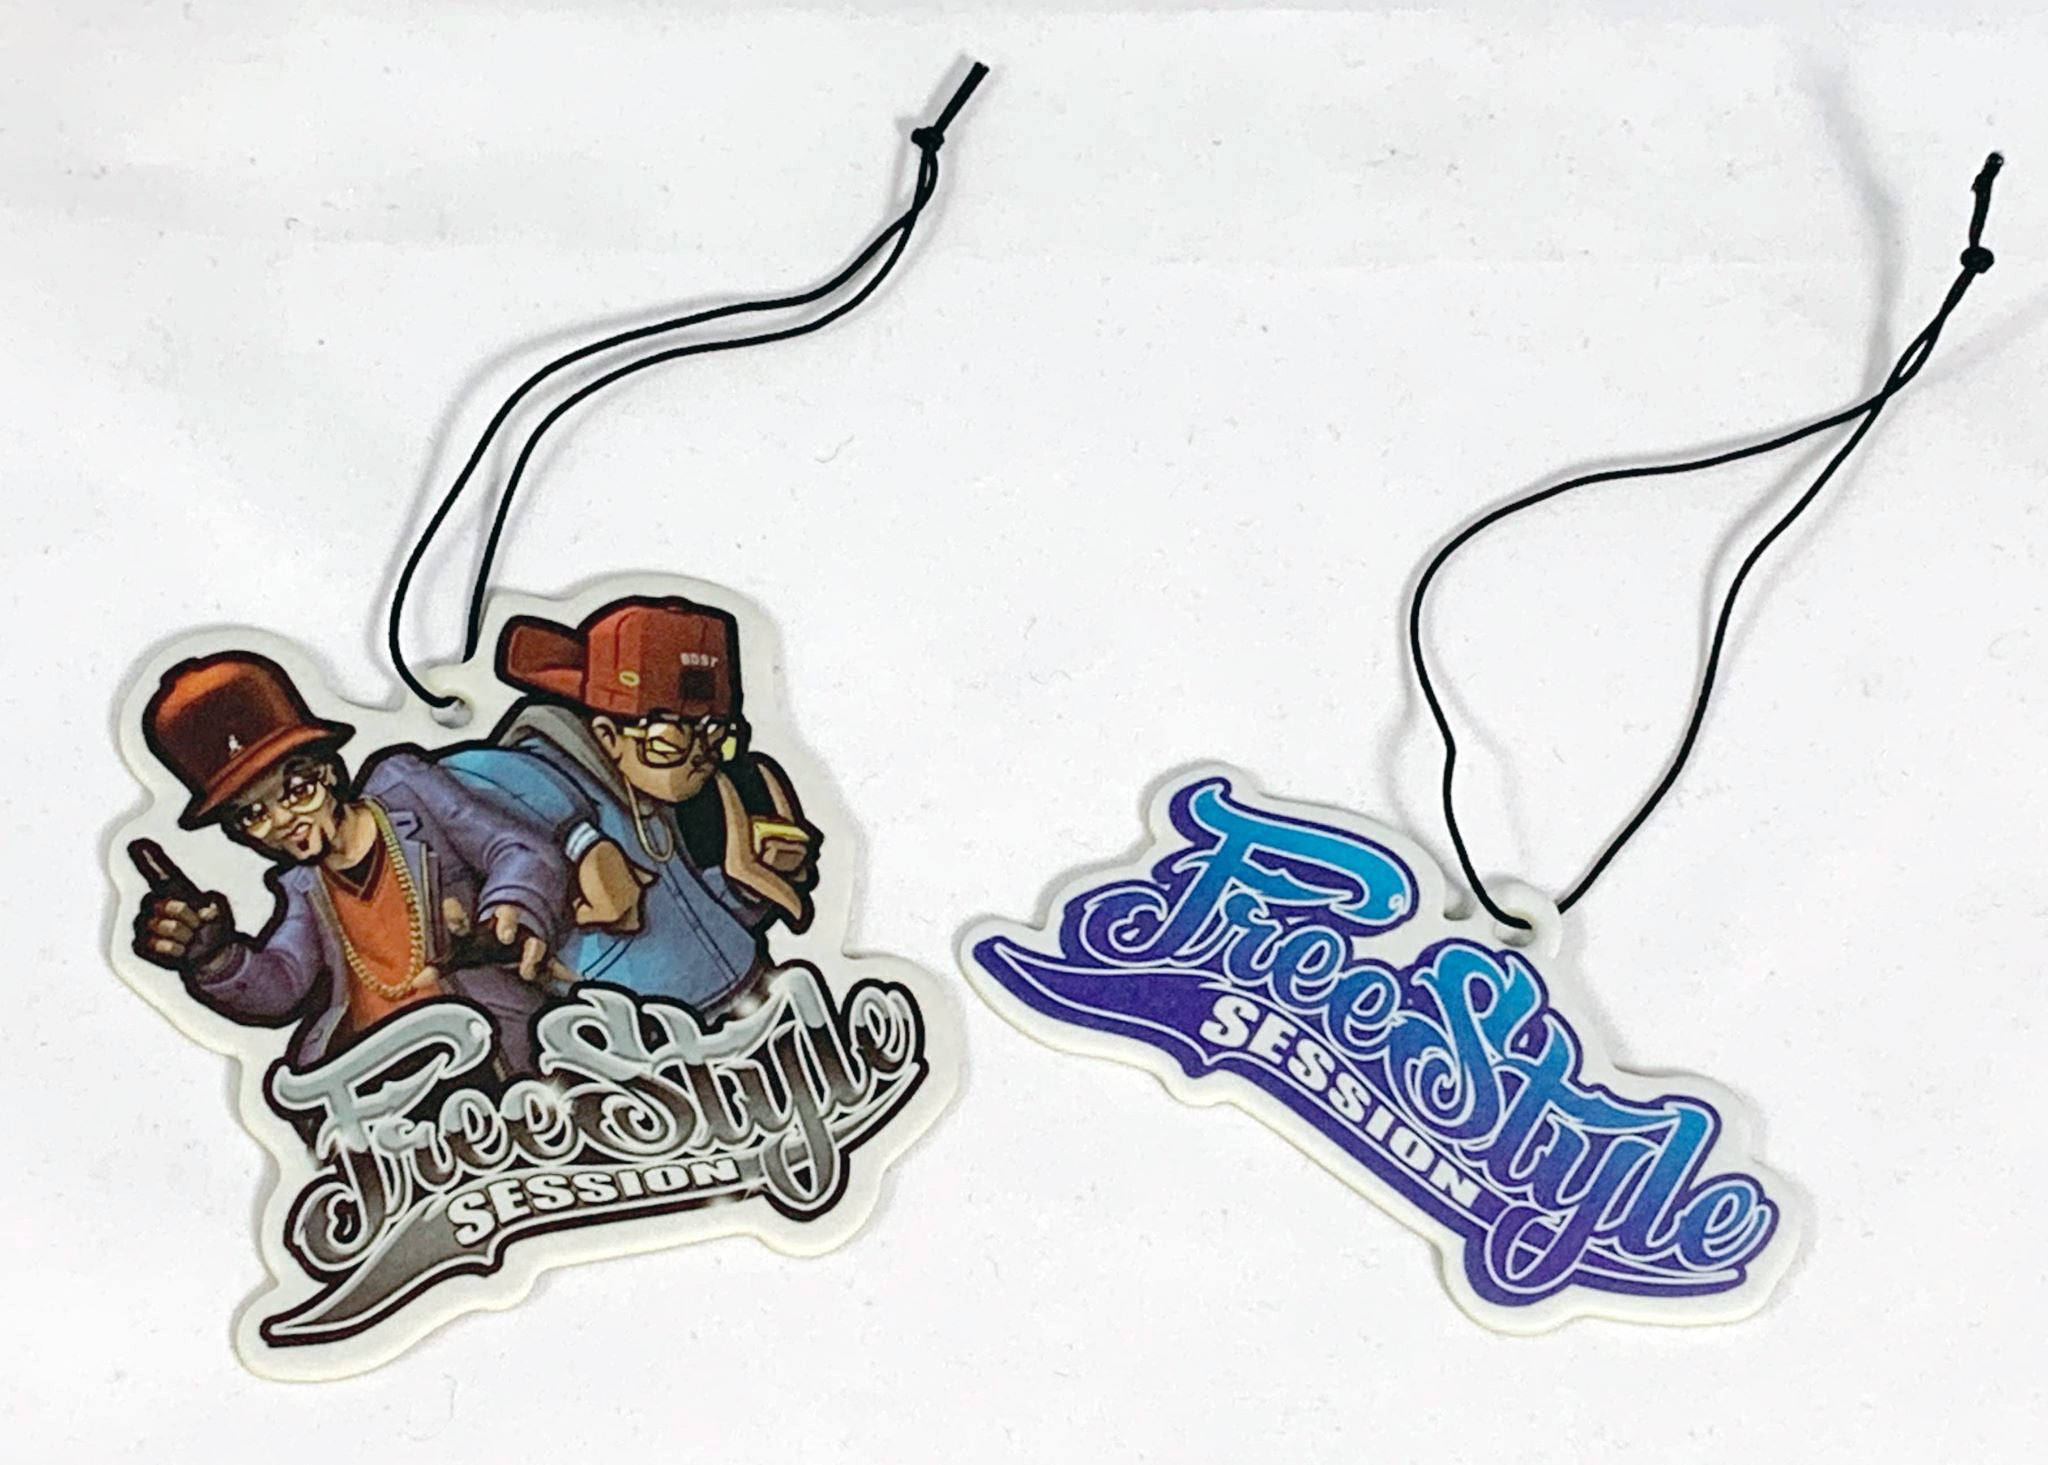 Freestyle Session Air Fresheners